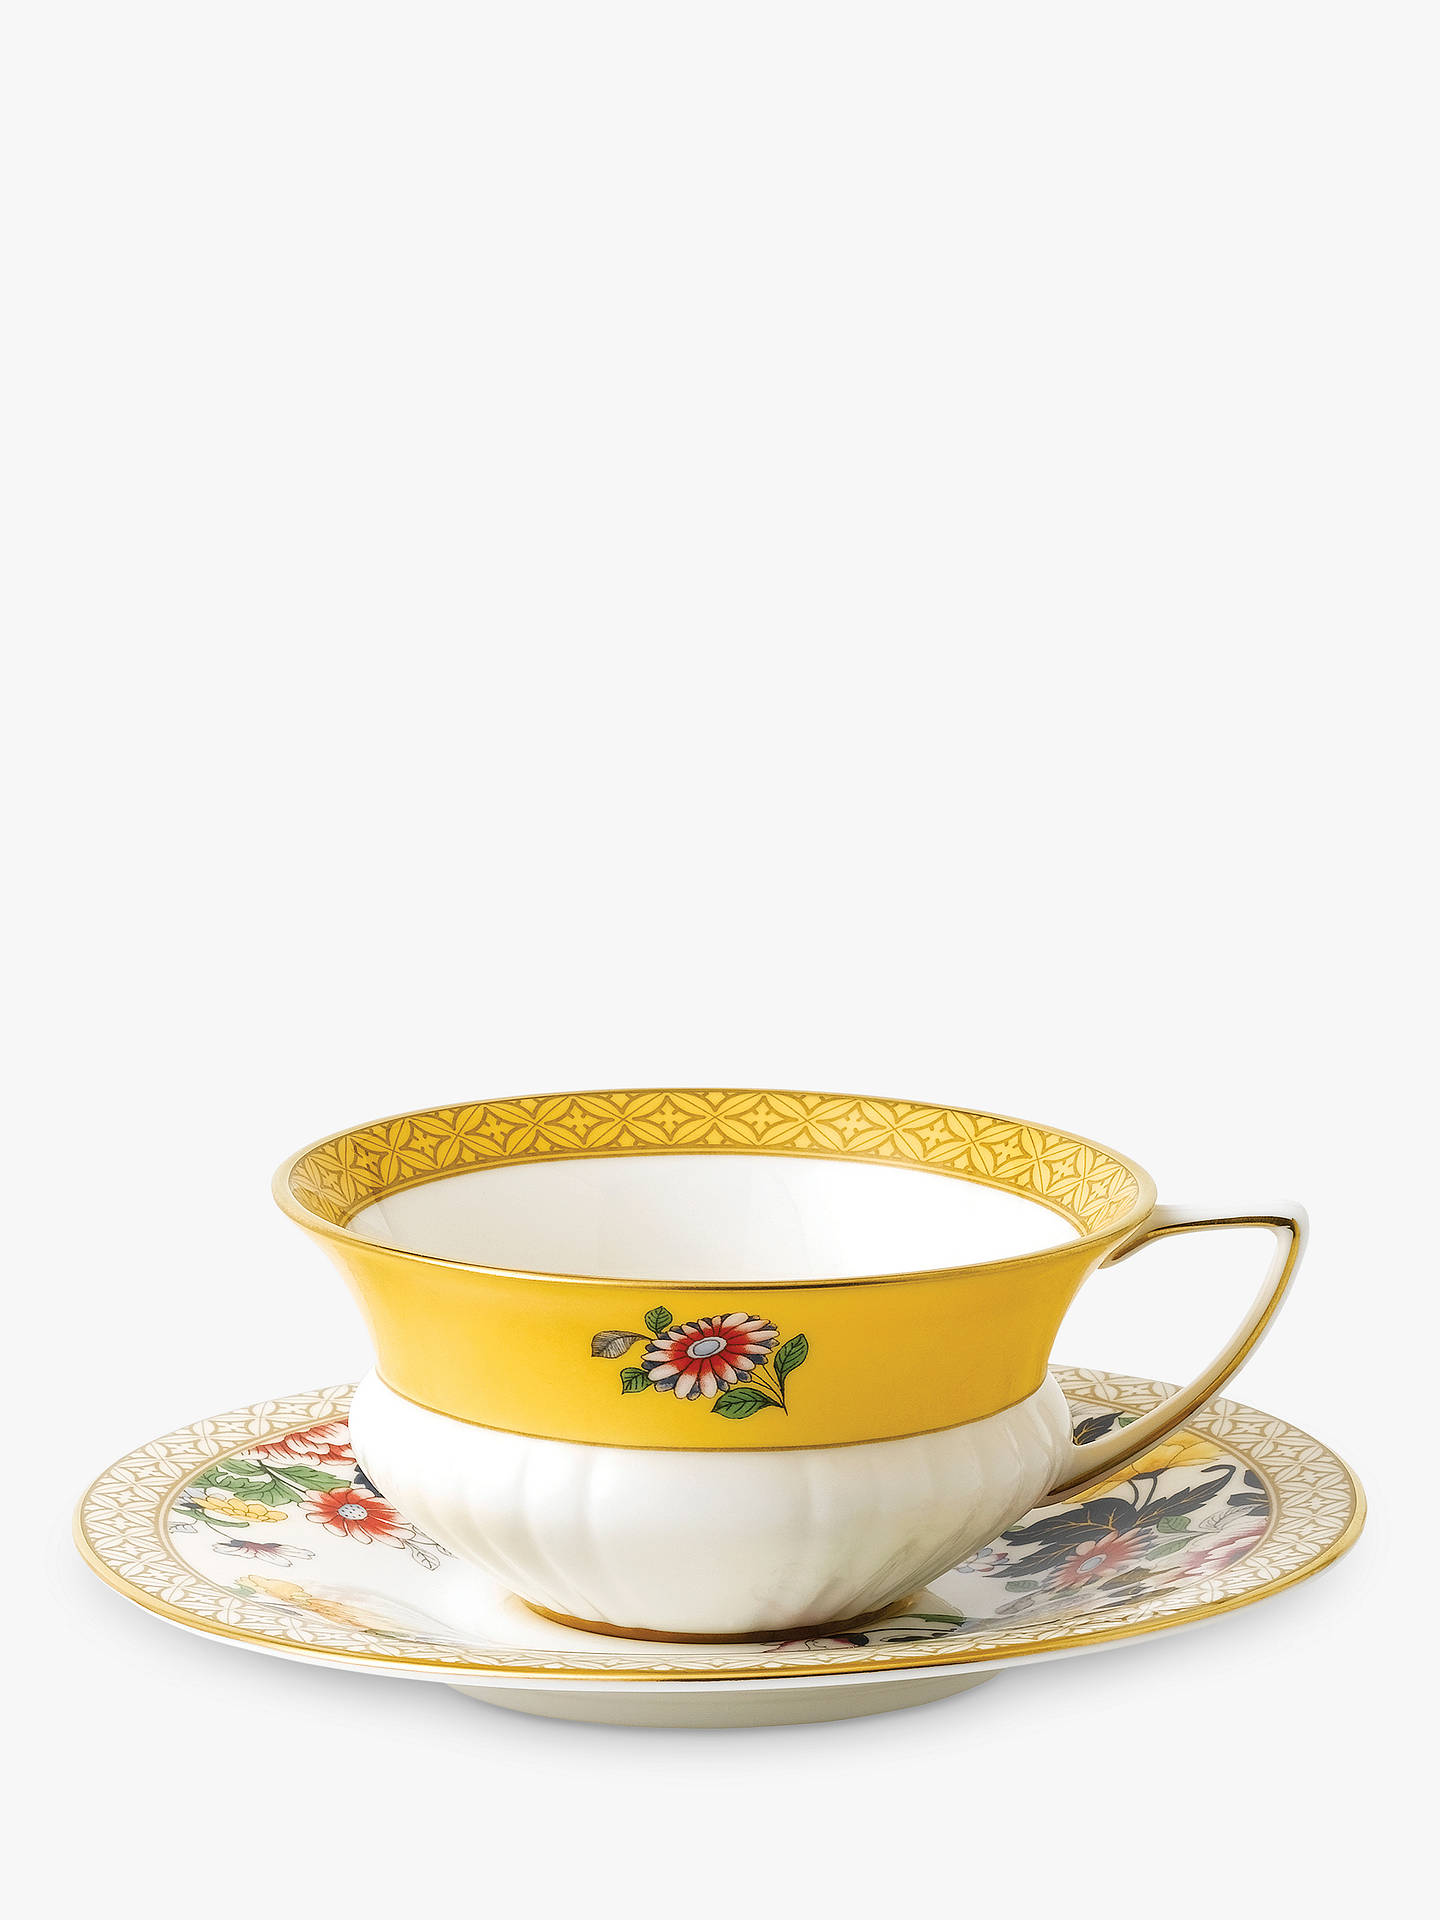 BuyWedgwood Wonderlust Primrose Cup and Saucer Set, Multi, 180ml Online at johnlewis.com